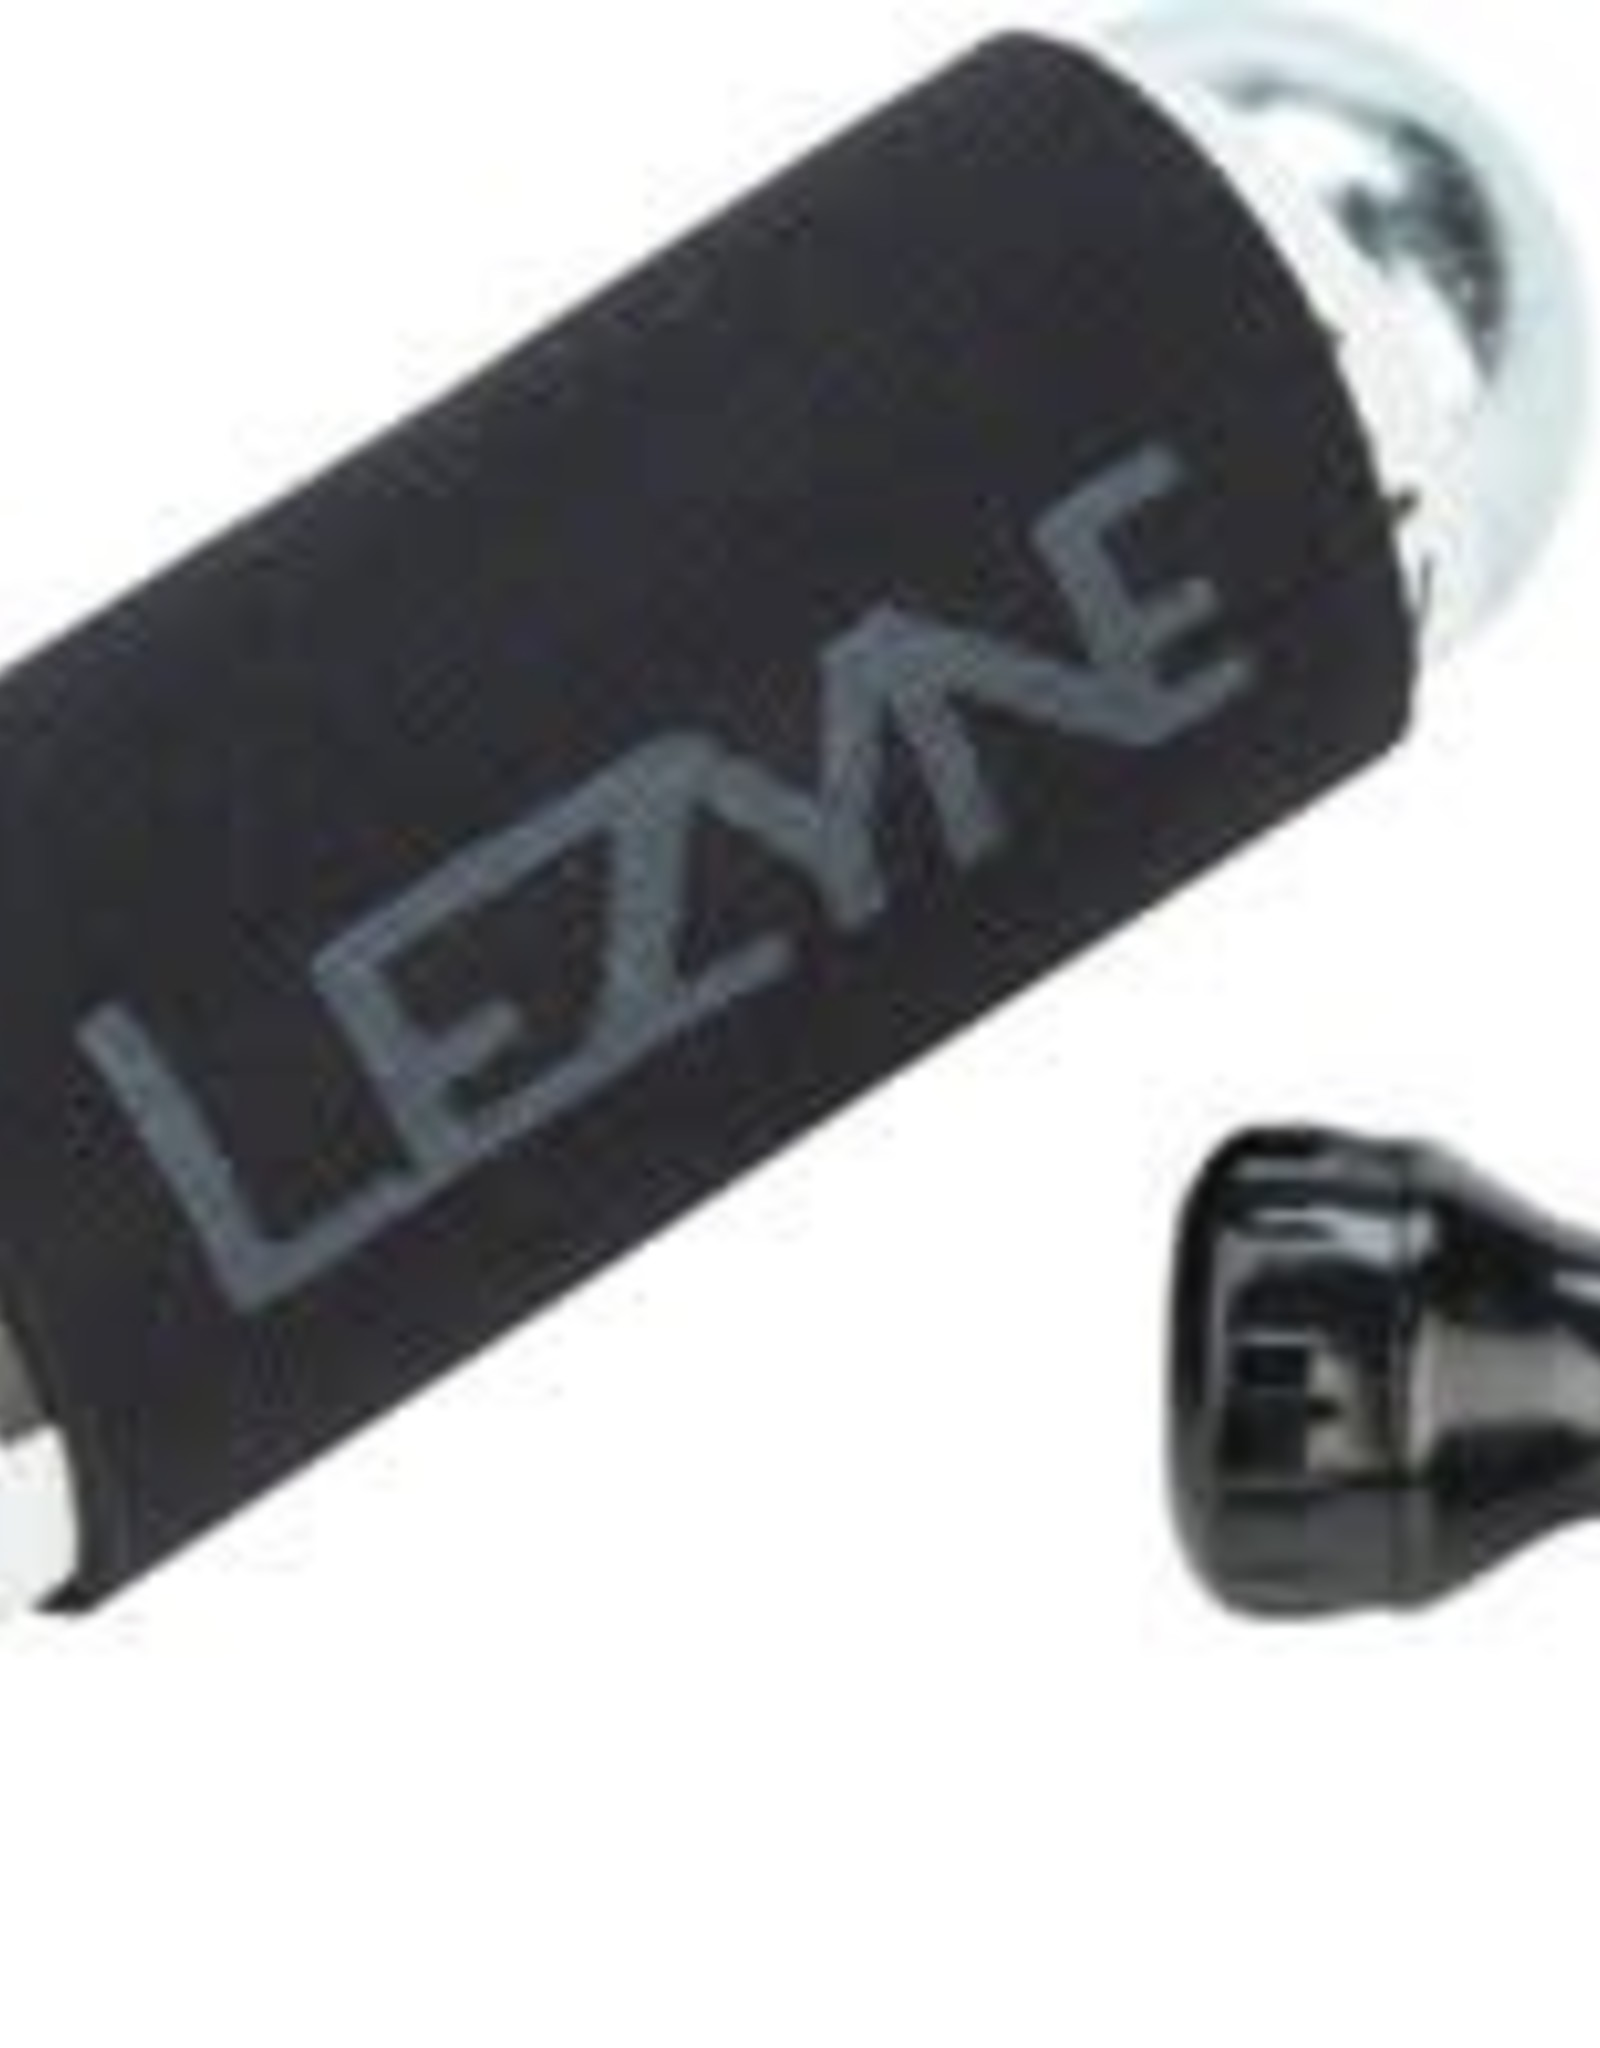 Lezyne Lezyne Control Drive Co2 with 25 gram cartridge and machined Slip Fit Chuck, Black [PU4286]